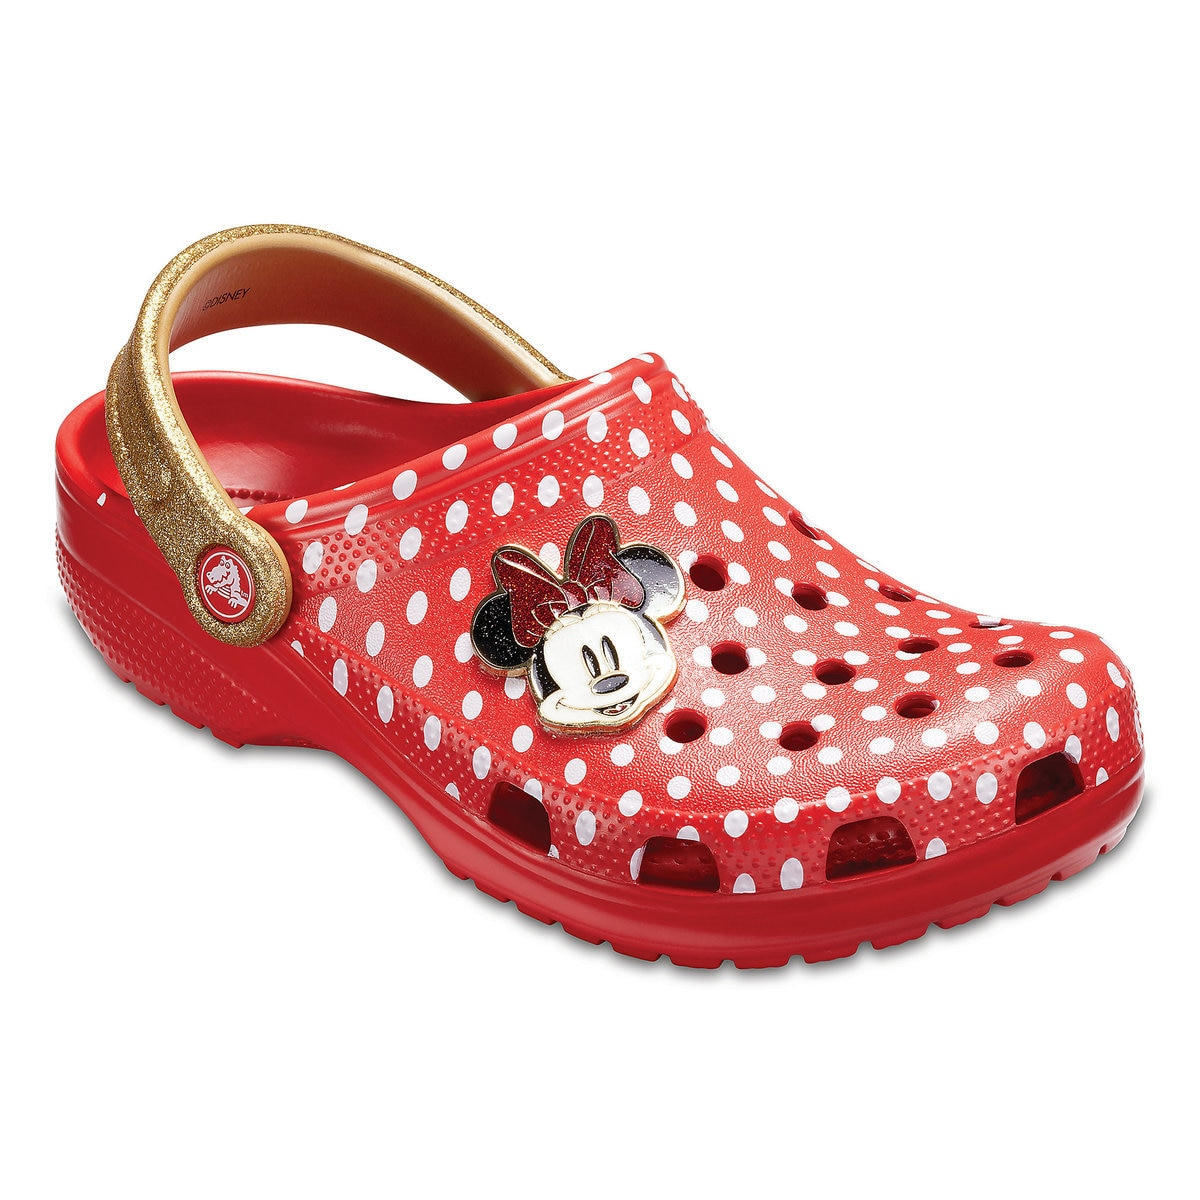 6520fa882c41 Product Image of Minnie Mouse Classic Clogs for Women by Crocs   1